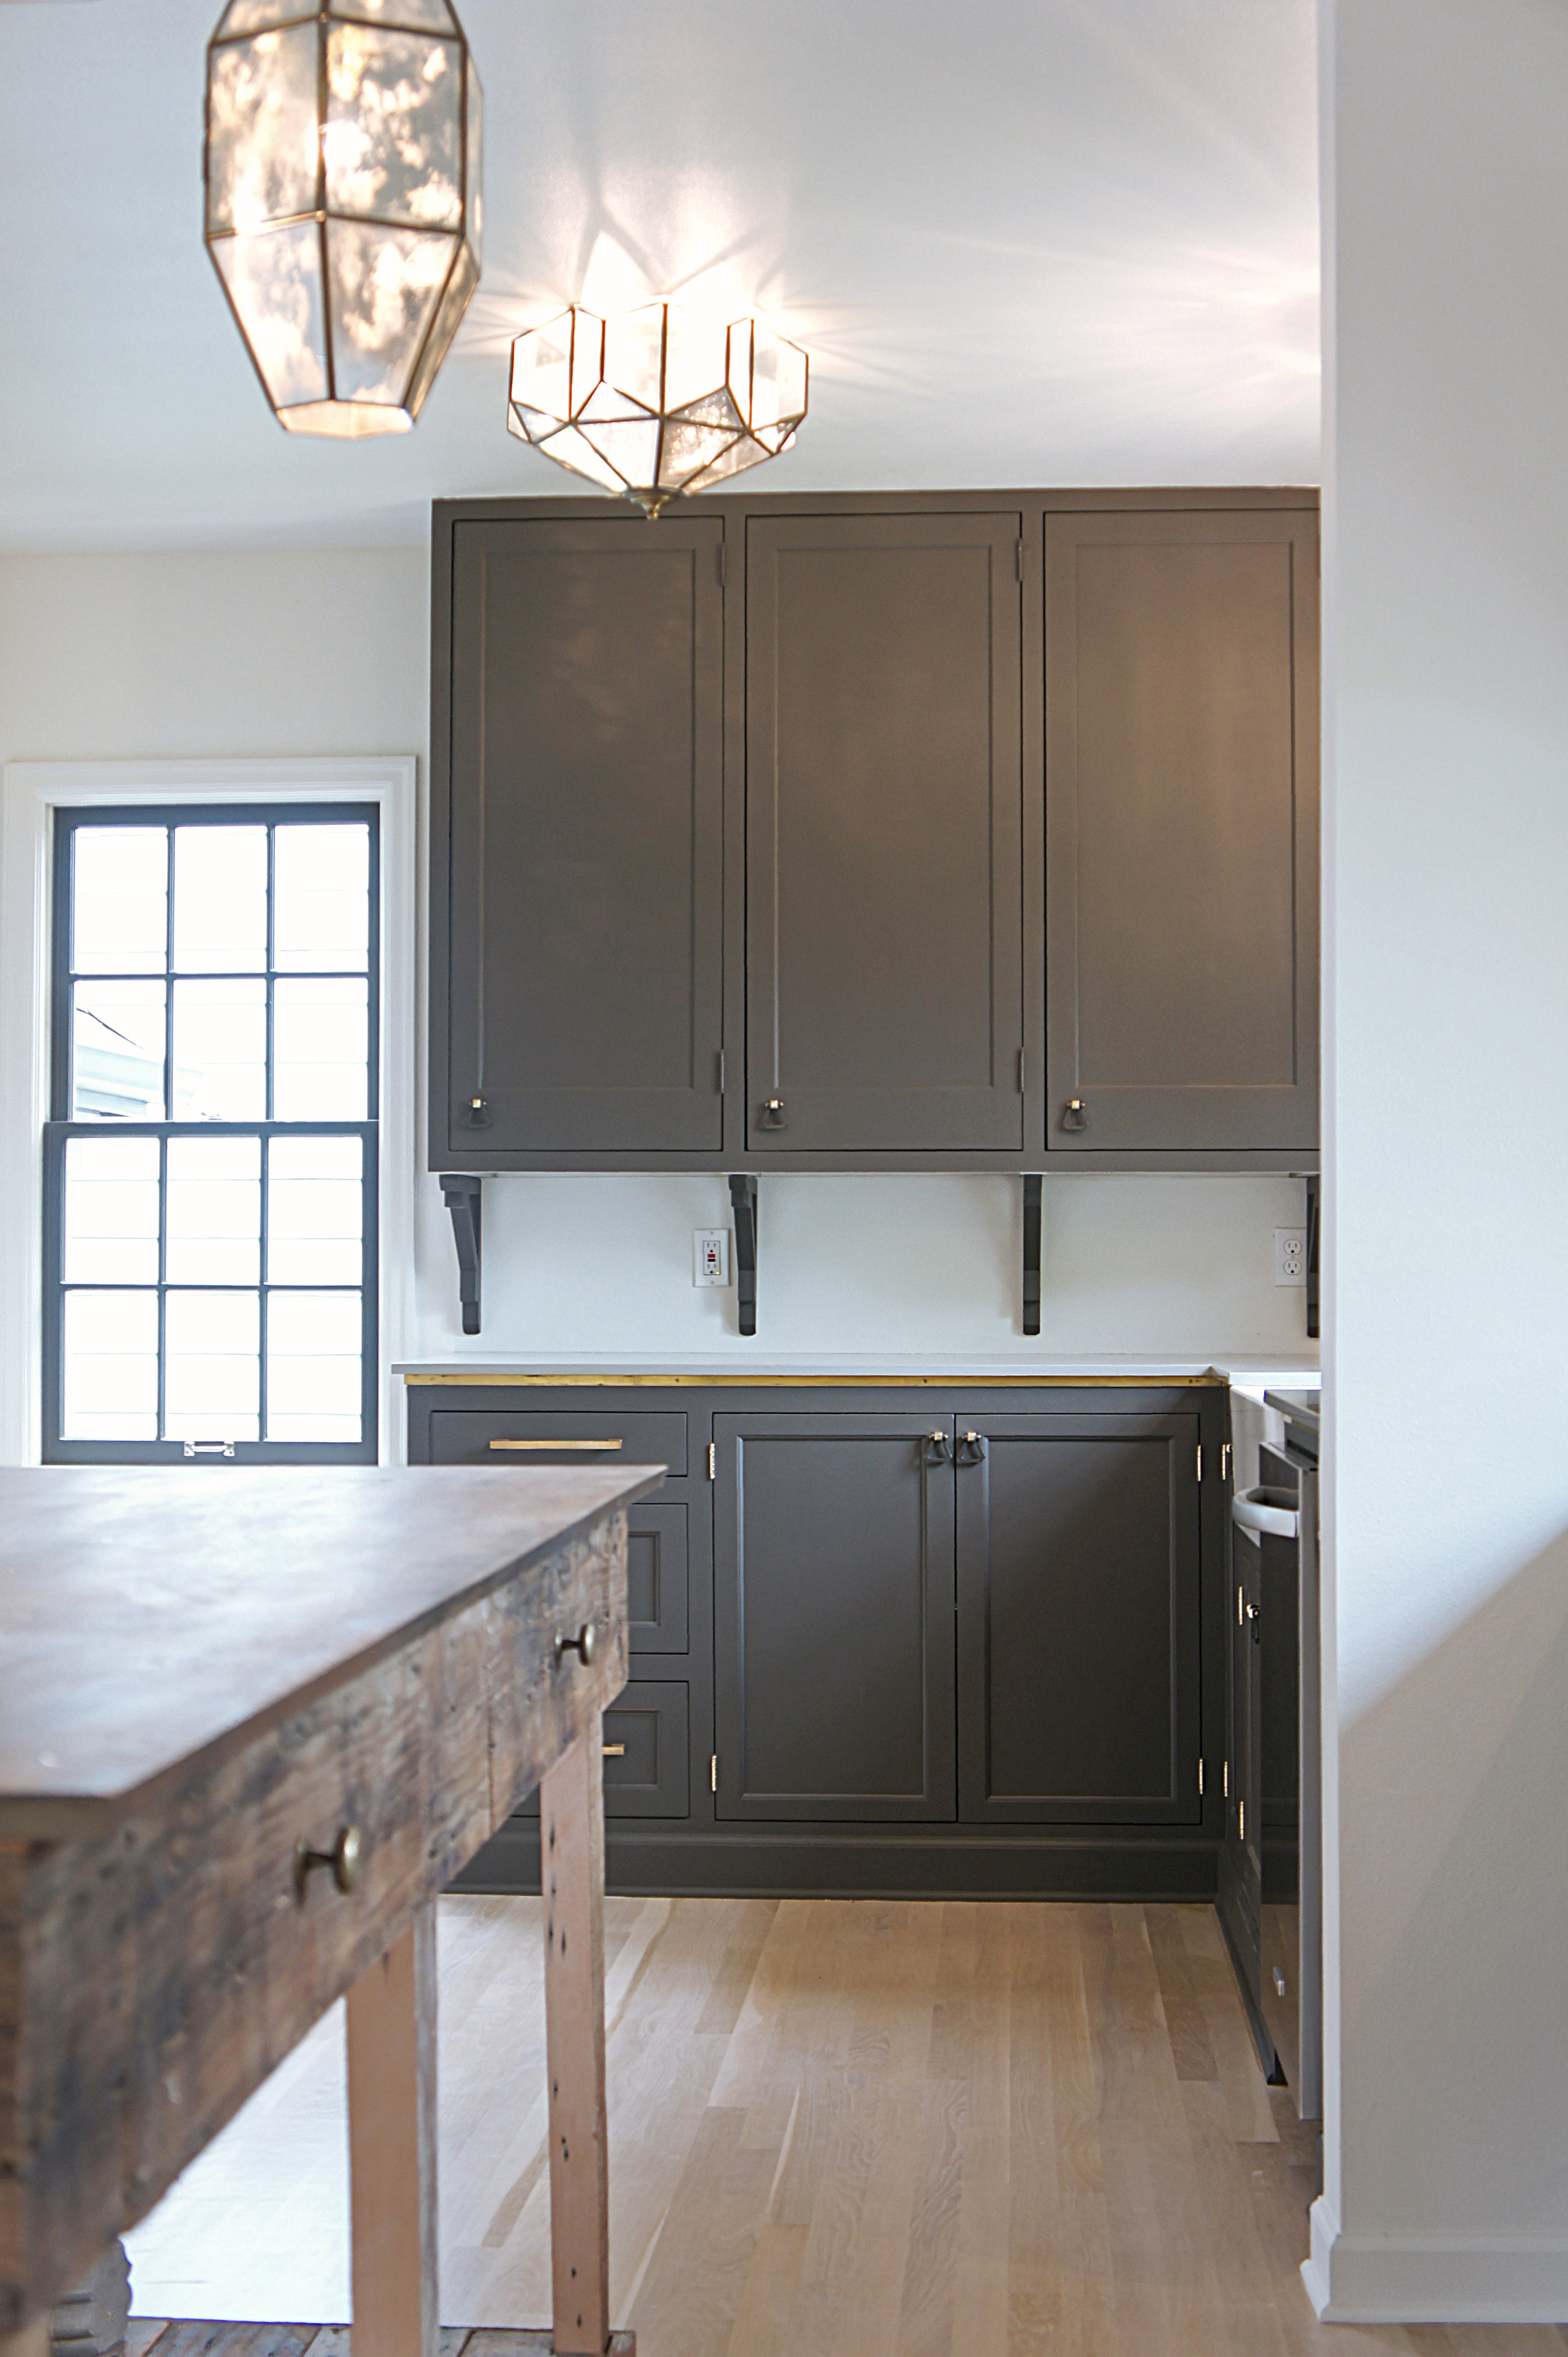 Kitchen Cabinets by Kaemingk Design